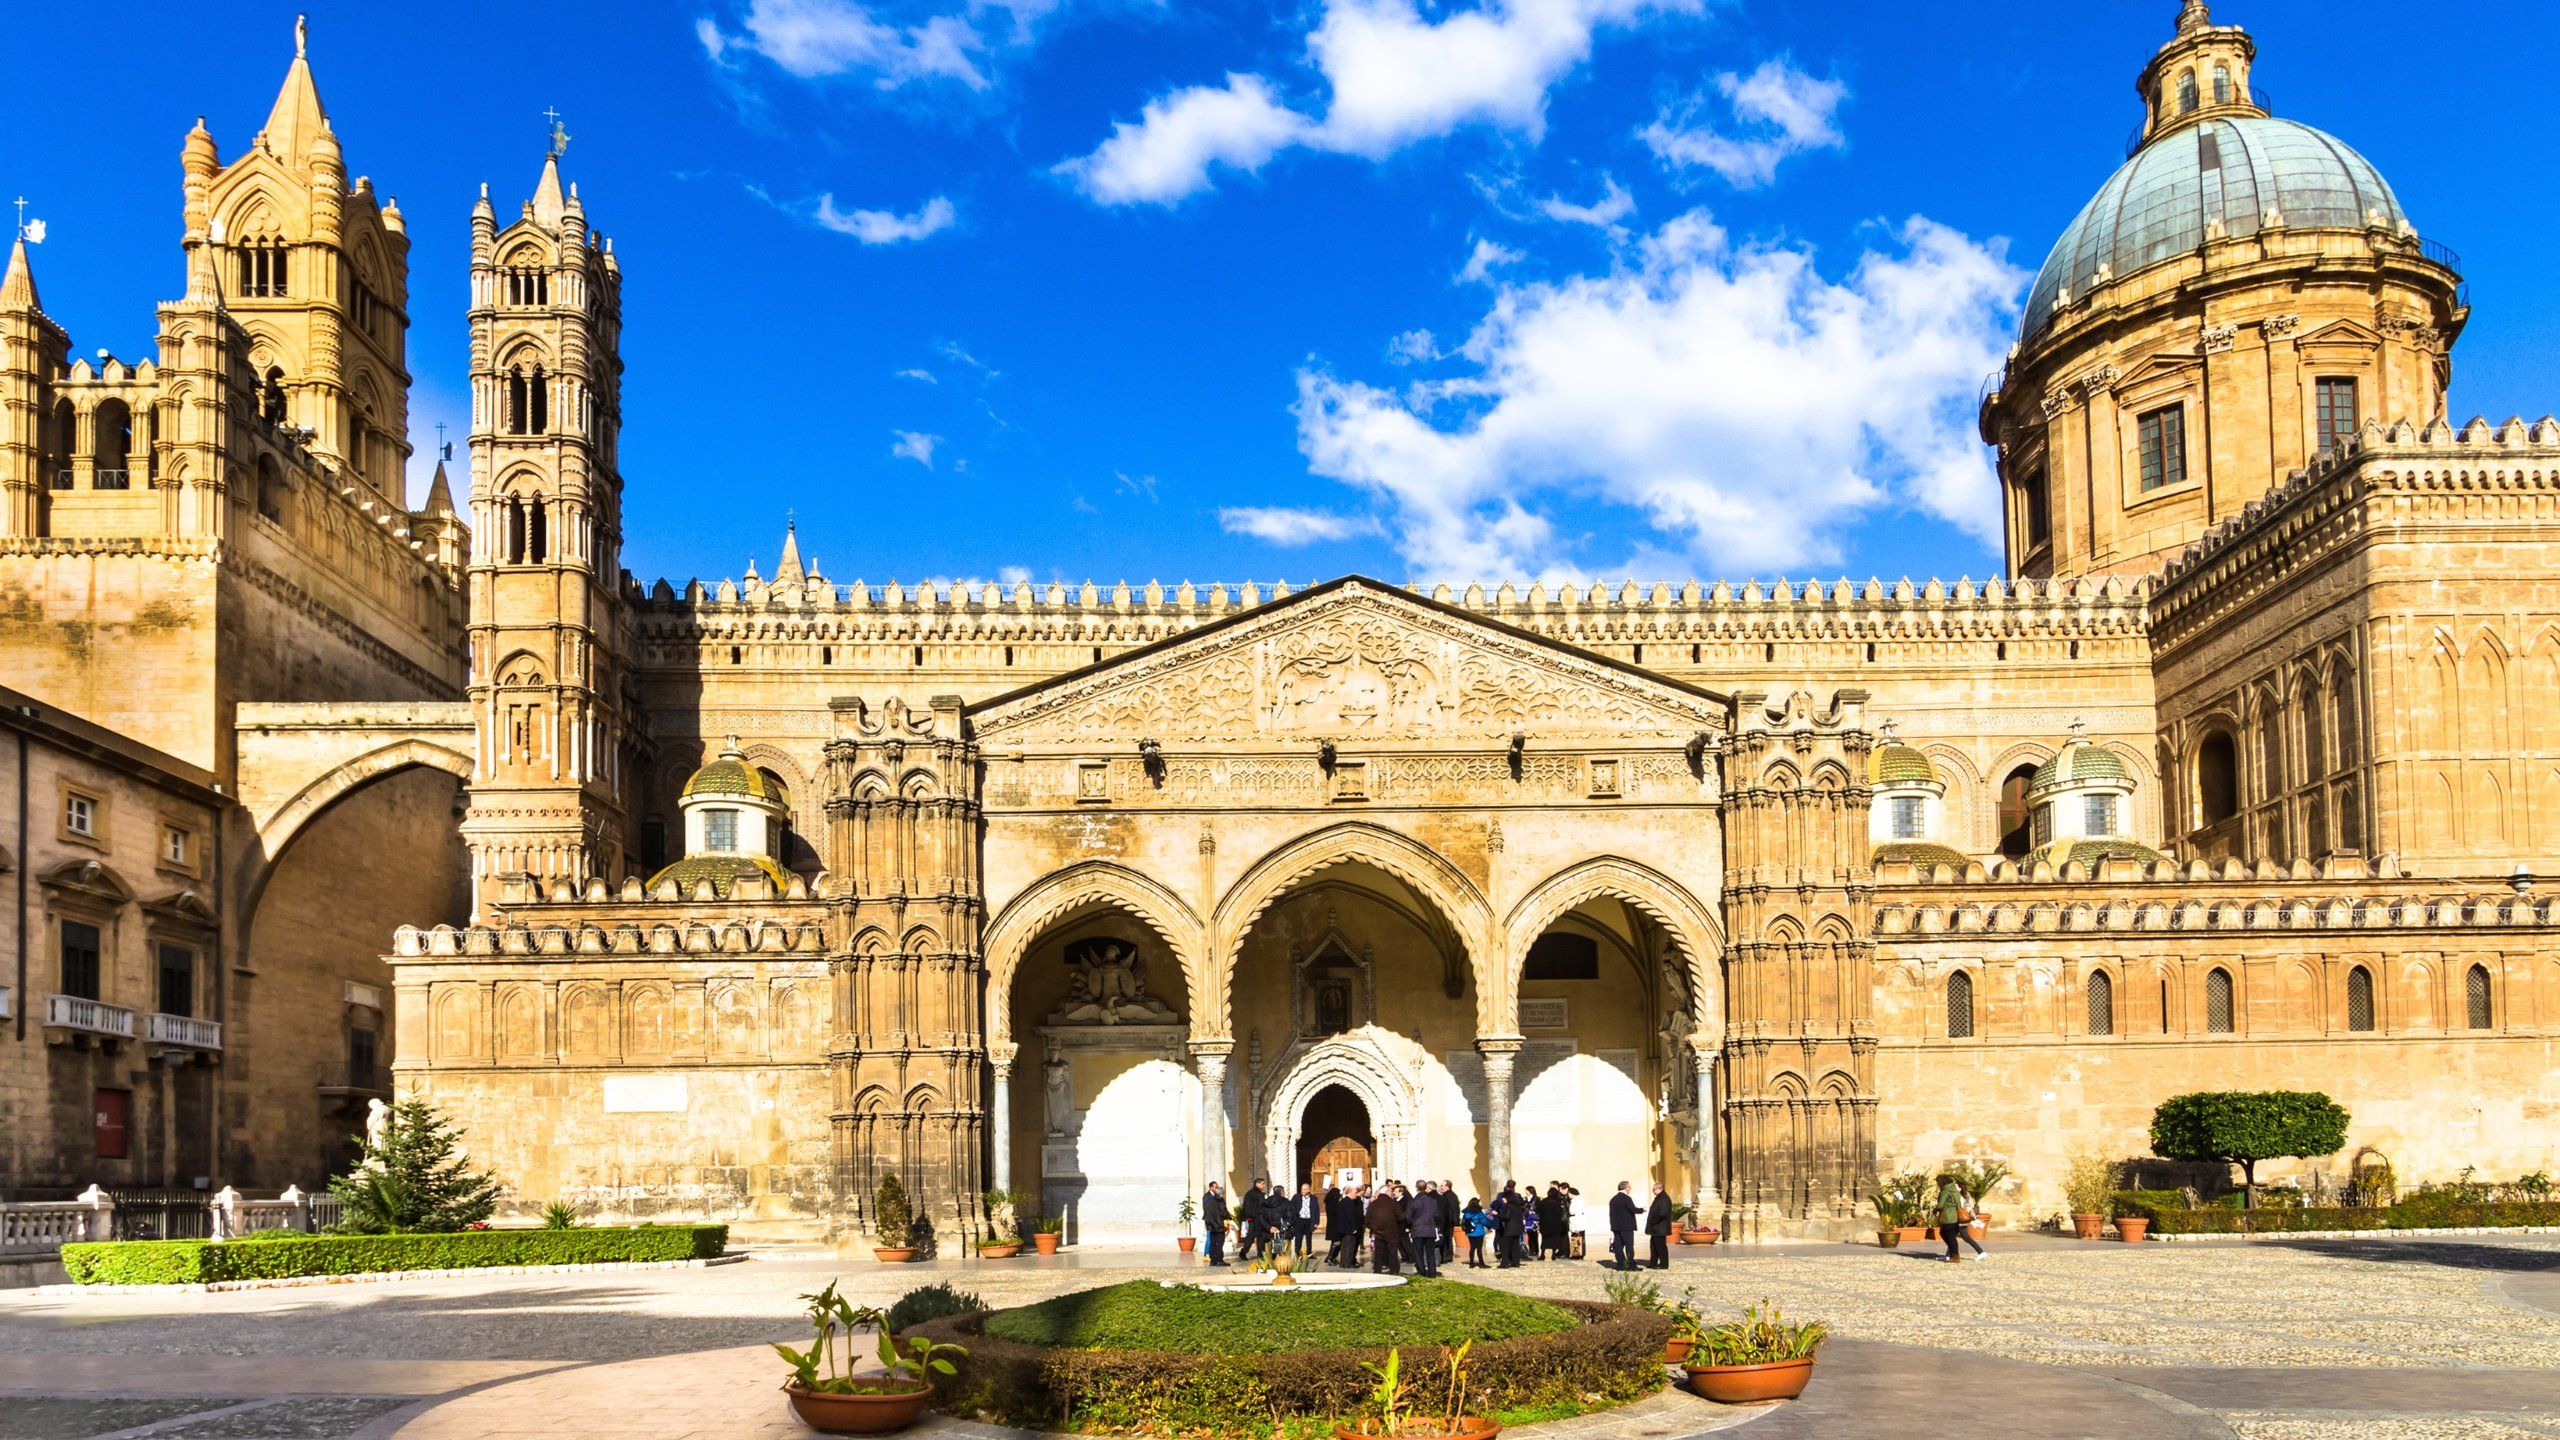 You can learn about the history of Palermo with a stop at Palermo Cathedral. While in this culturally rich area, find time to visit its shops.